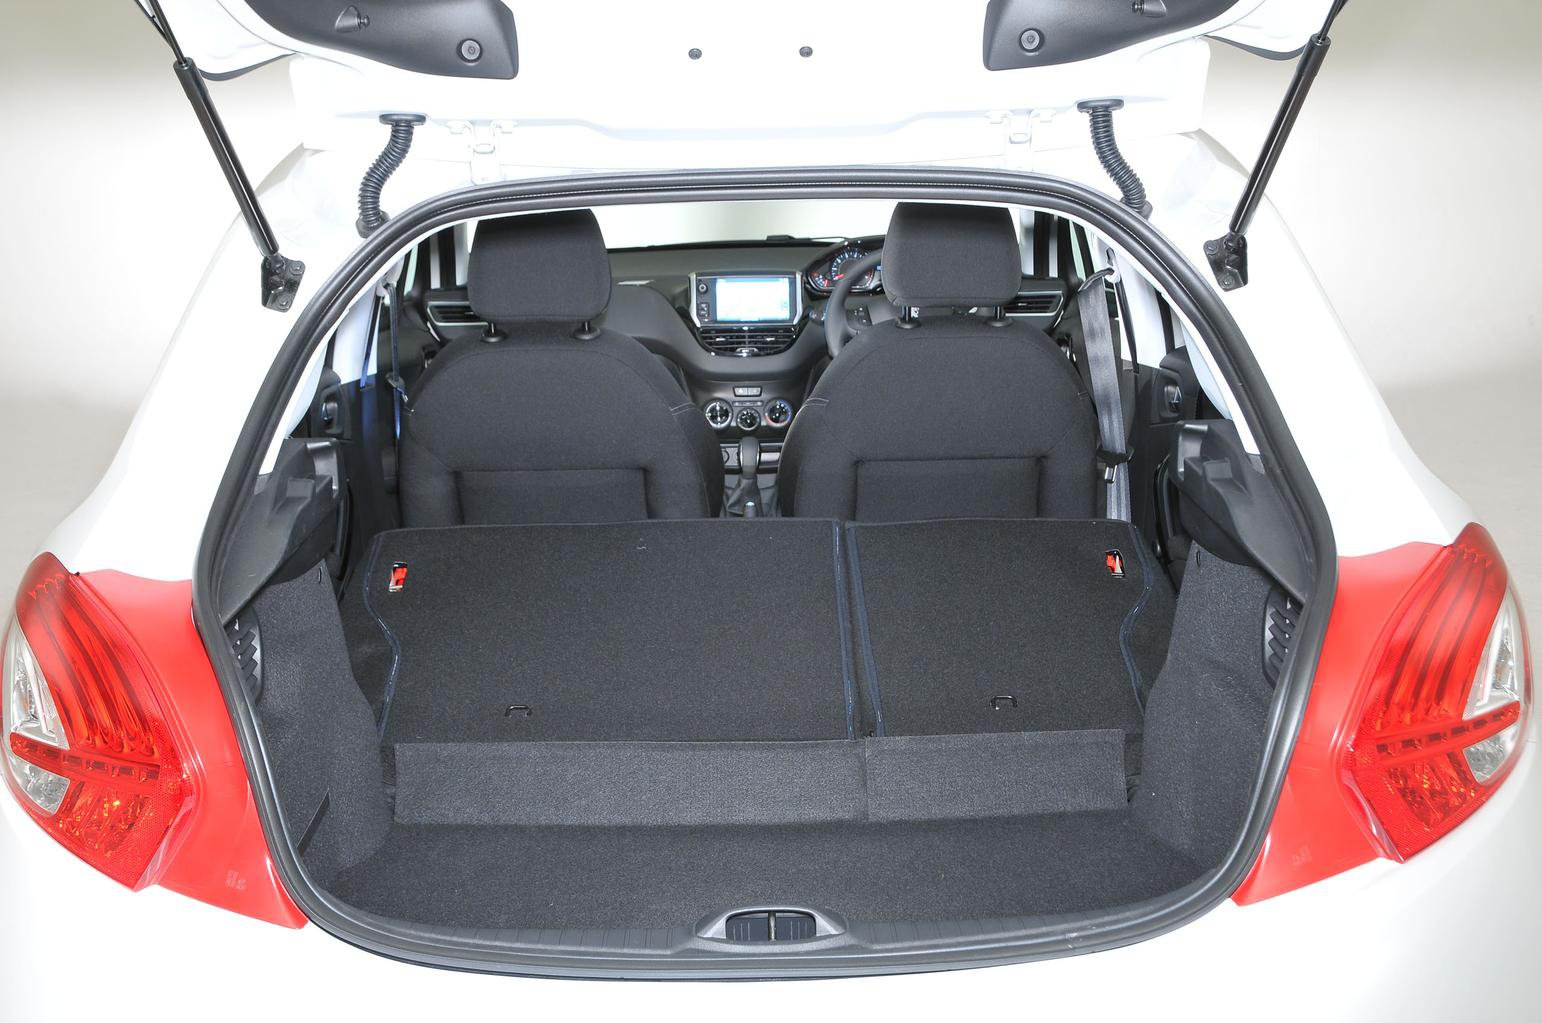 Peugeot 208 Boot Space, Size, Seats